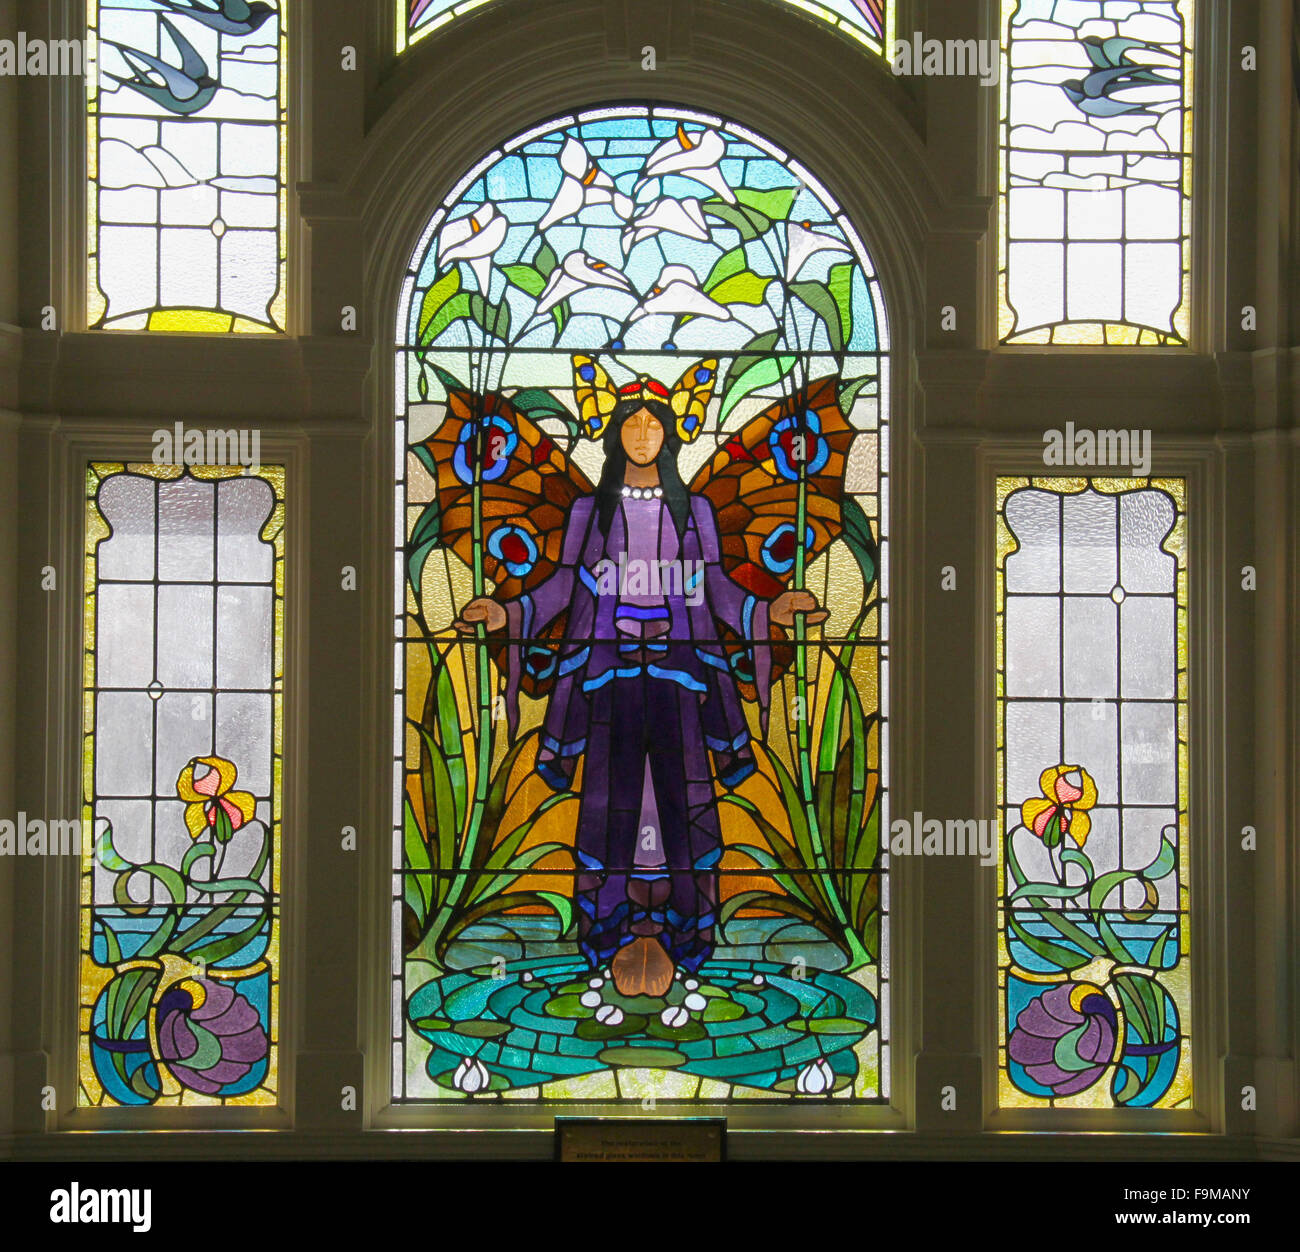 Angel of purity window art deco stained glass at for Art deco glass windows